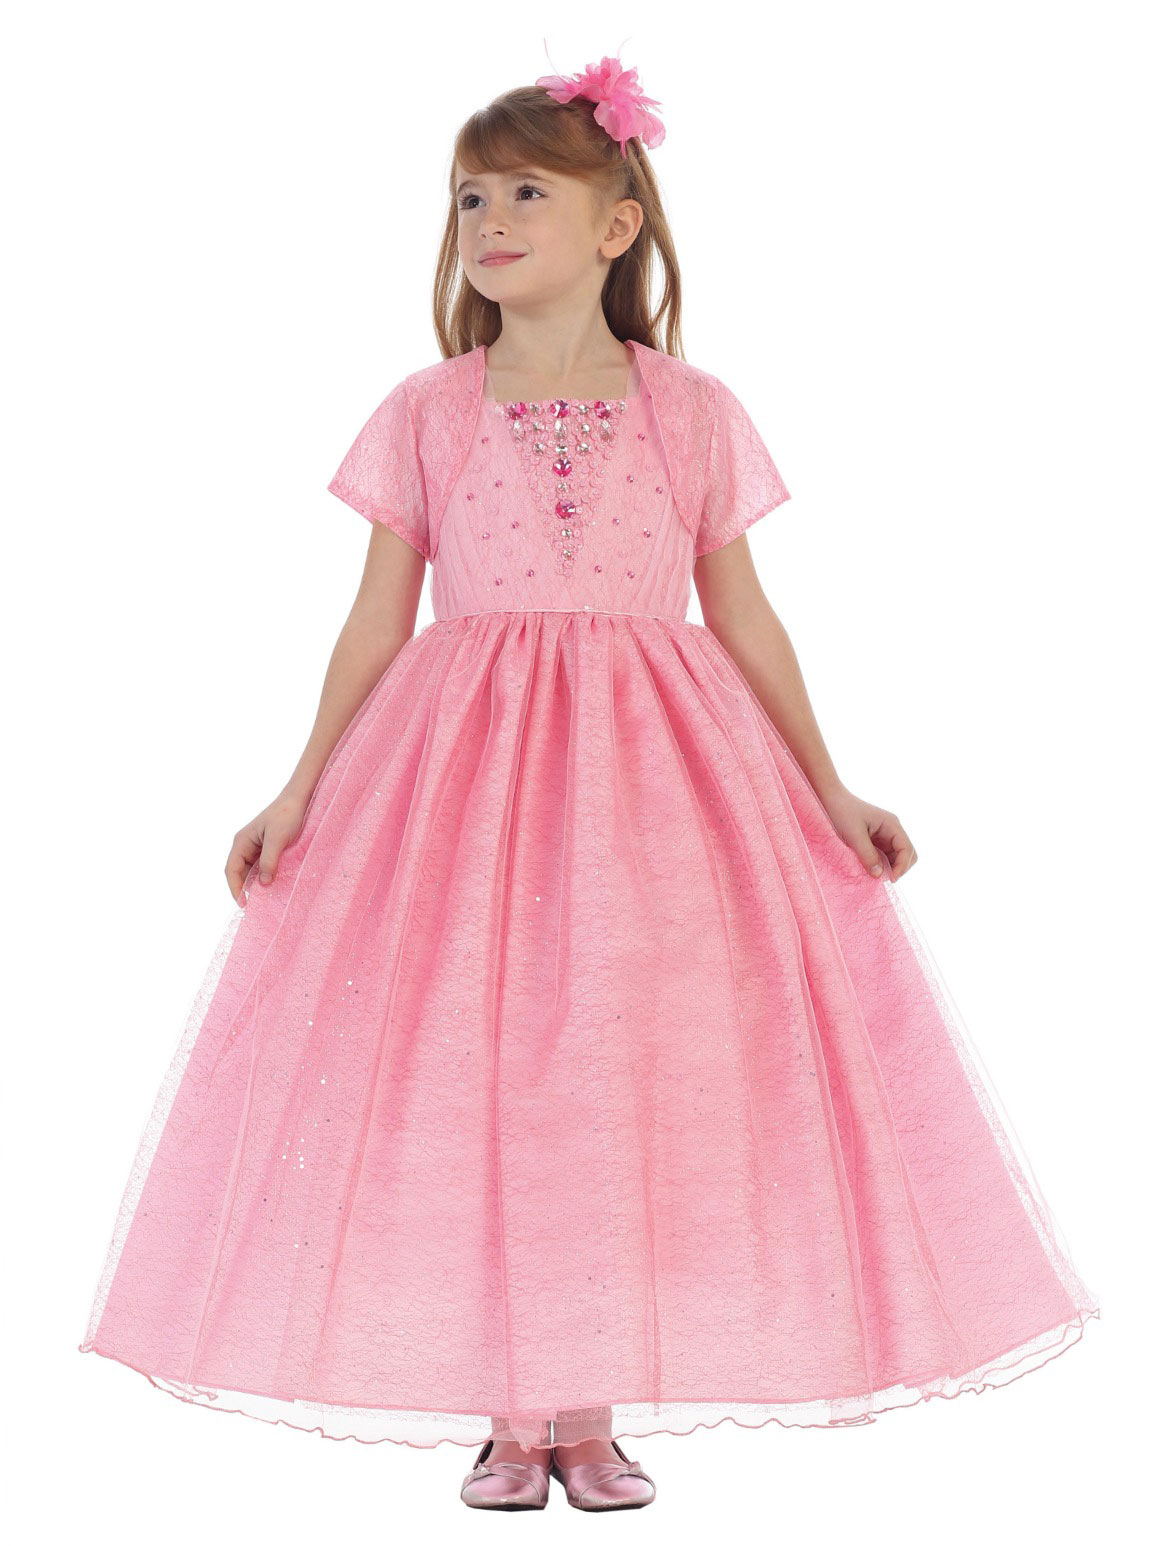 CB 1703P Girls Dress Style 1703 Sleeveless Tulle and Beaded Dress in Choic